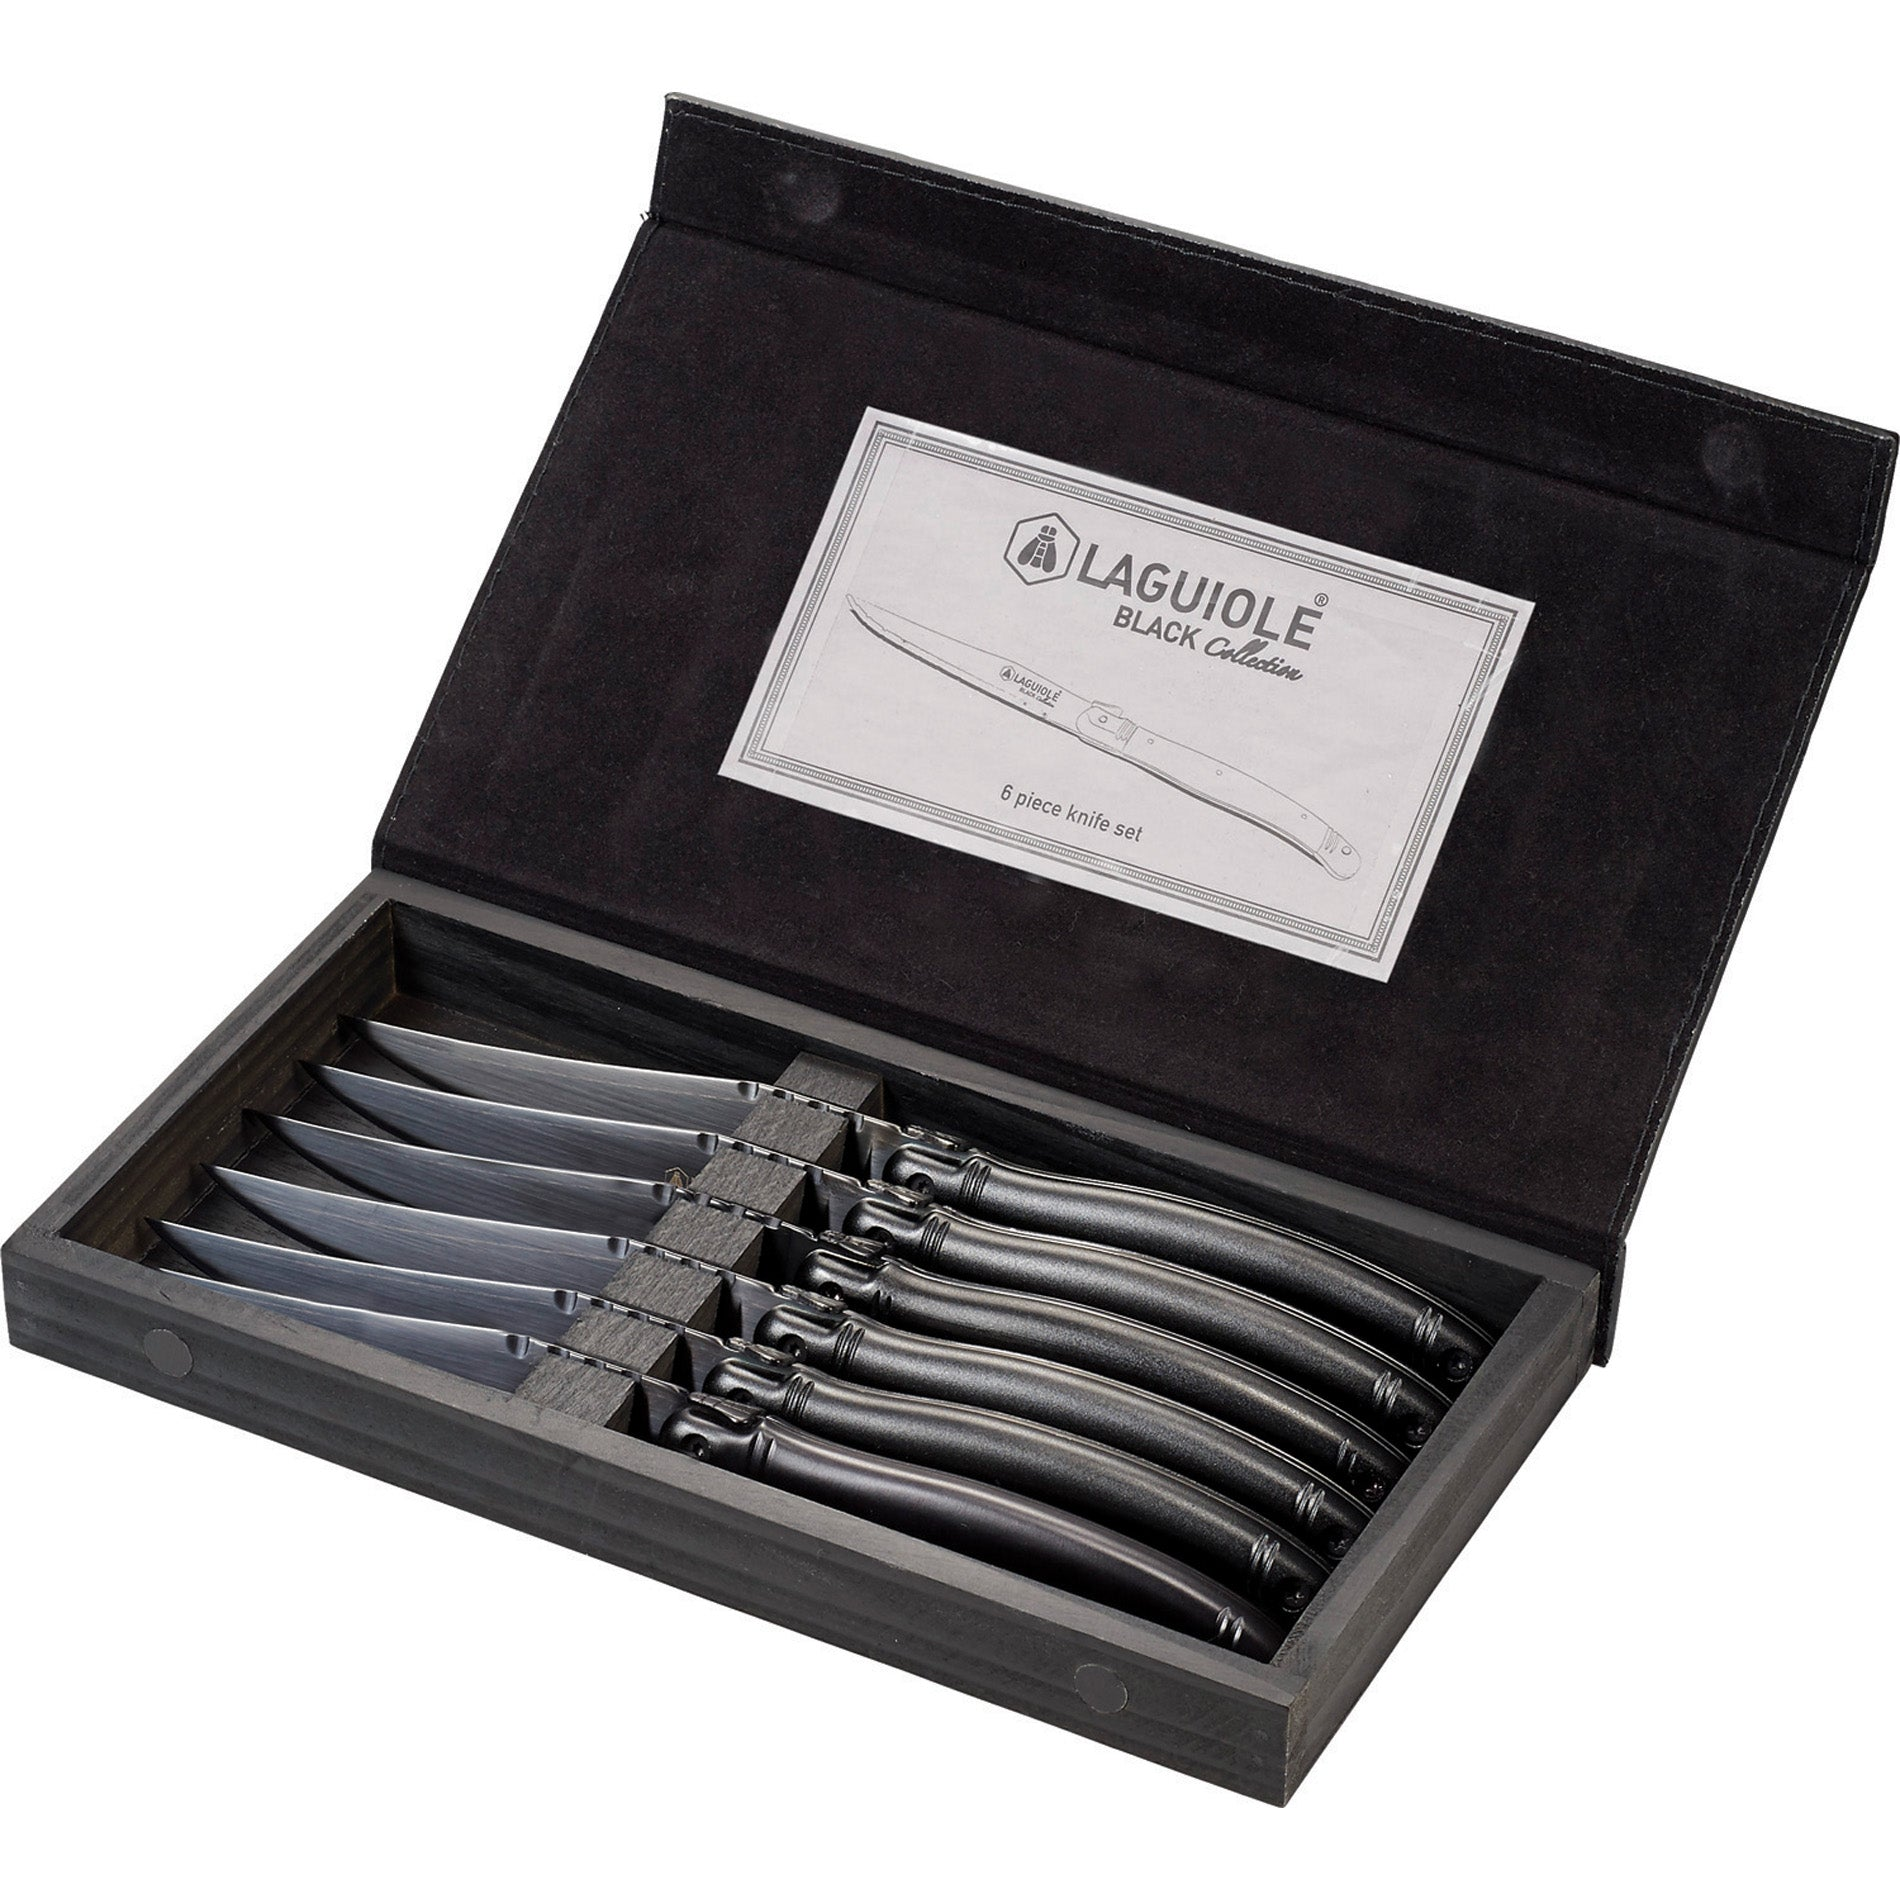 LEEDS LAGUIOLE BLACK KNIFE SET